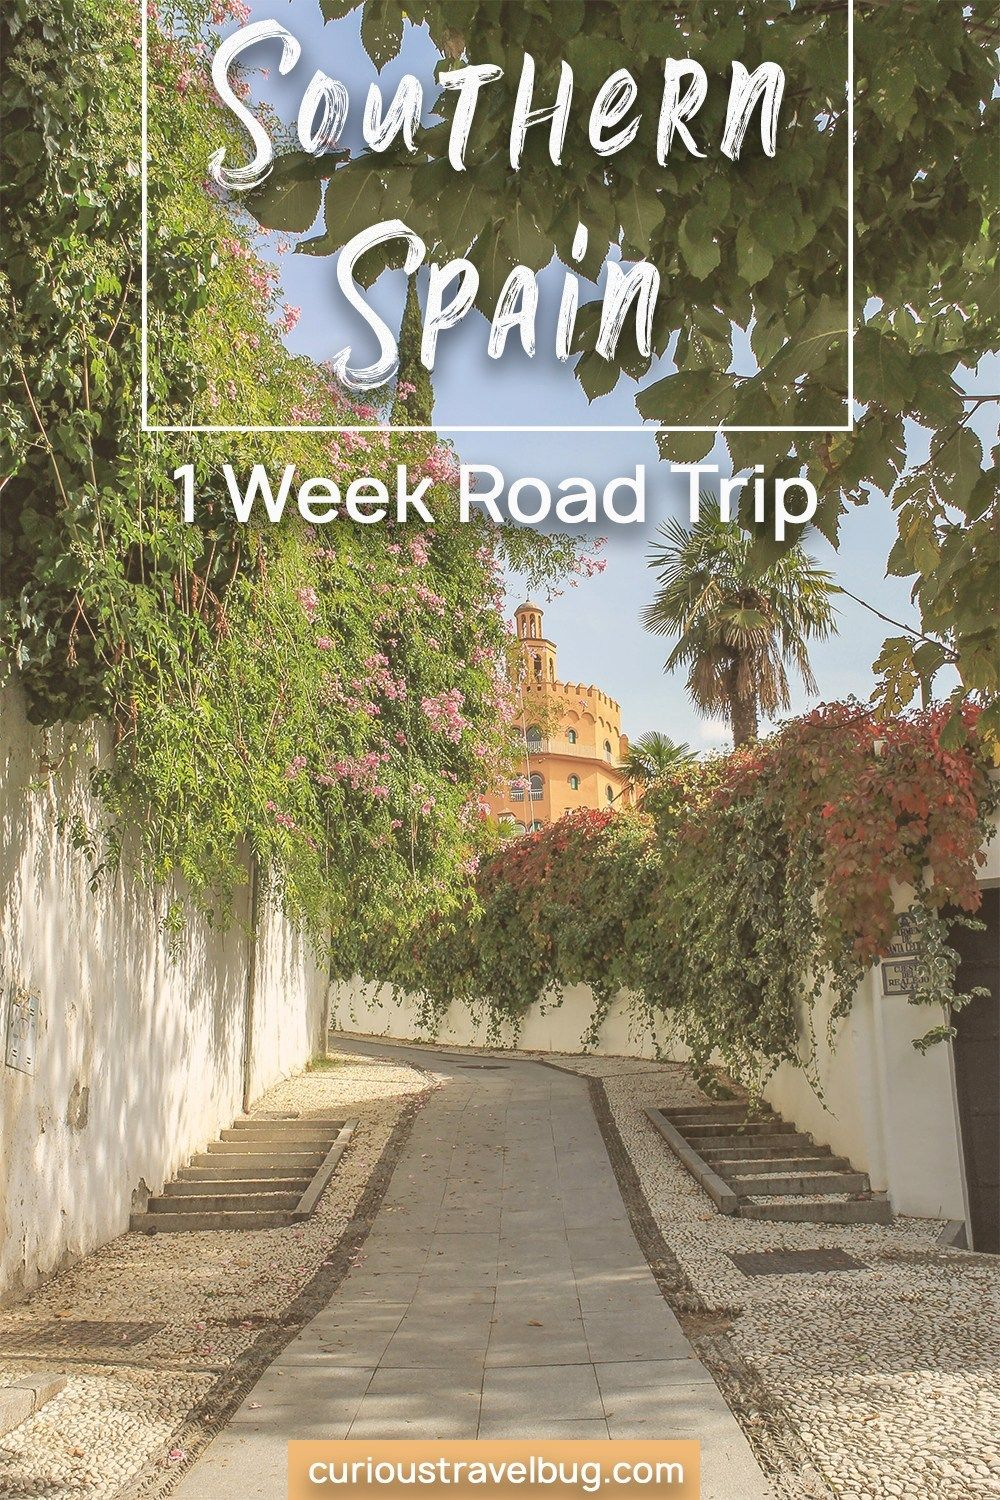 Must See Andalucia 7 Day Southern Spain Road Trip Itinerary #travelbugs